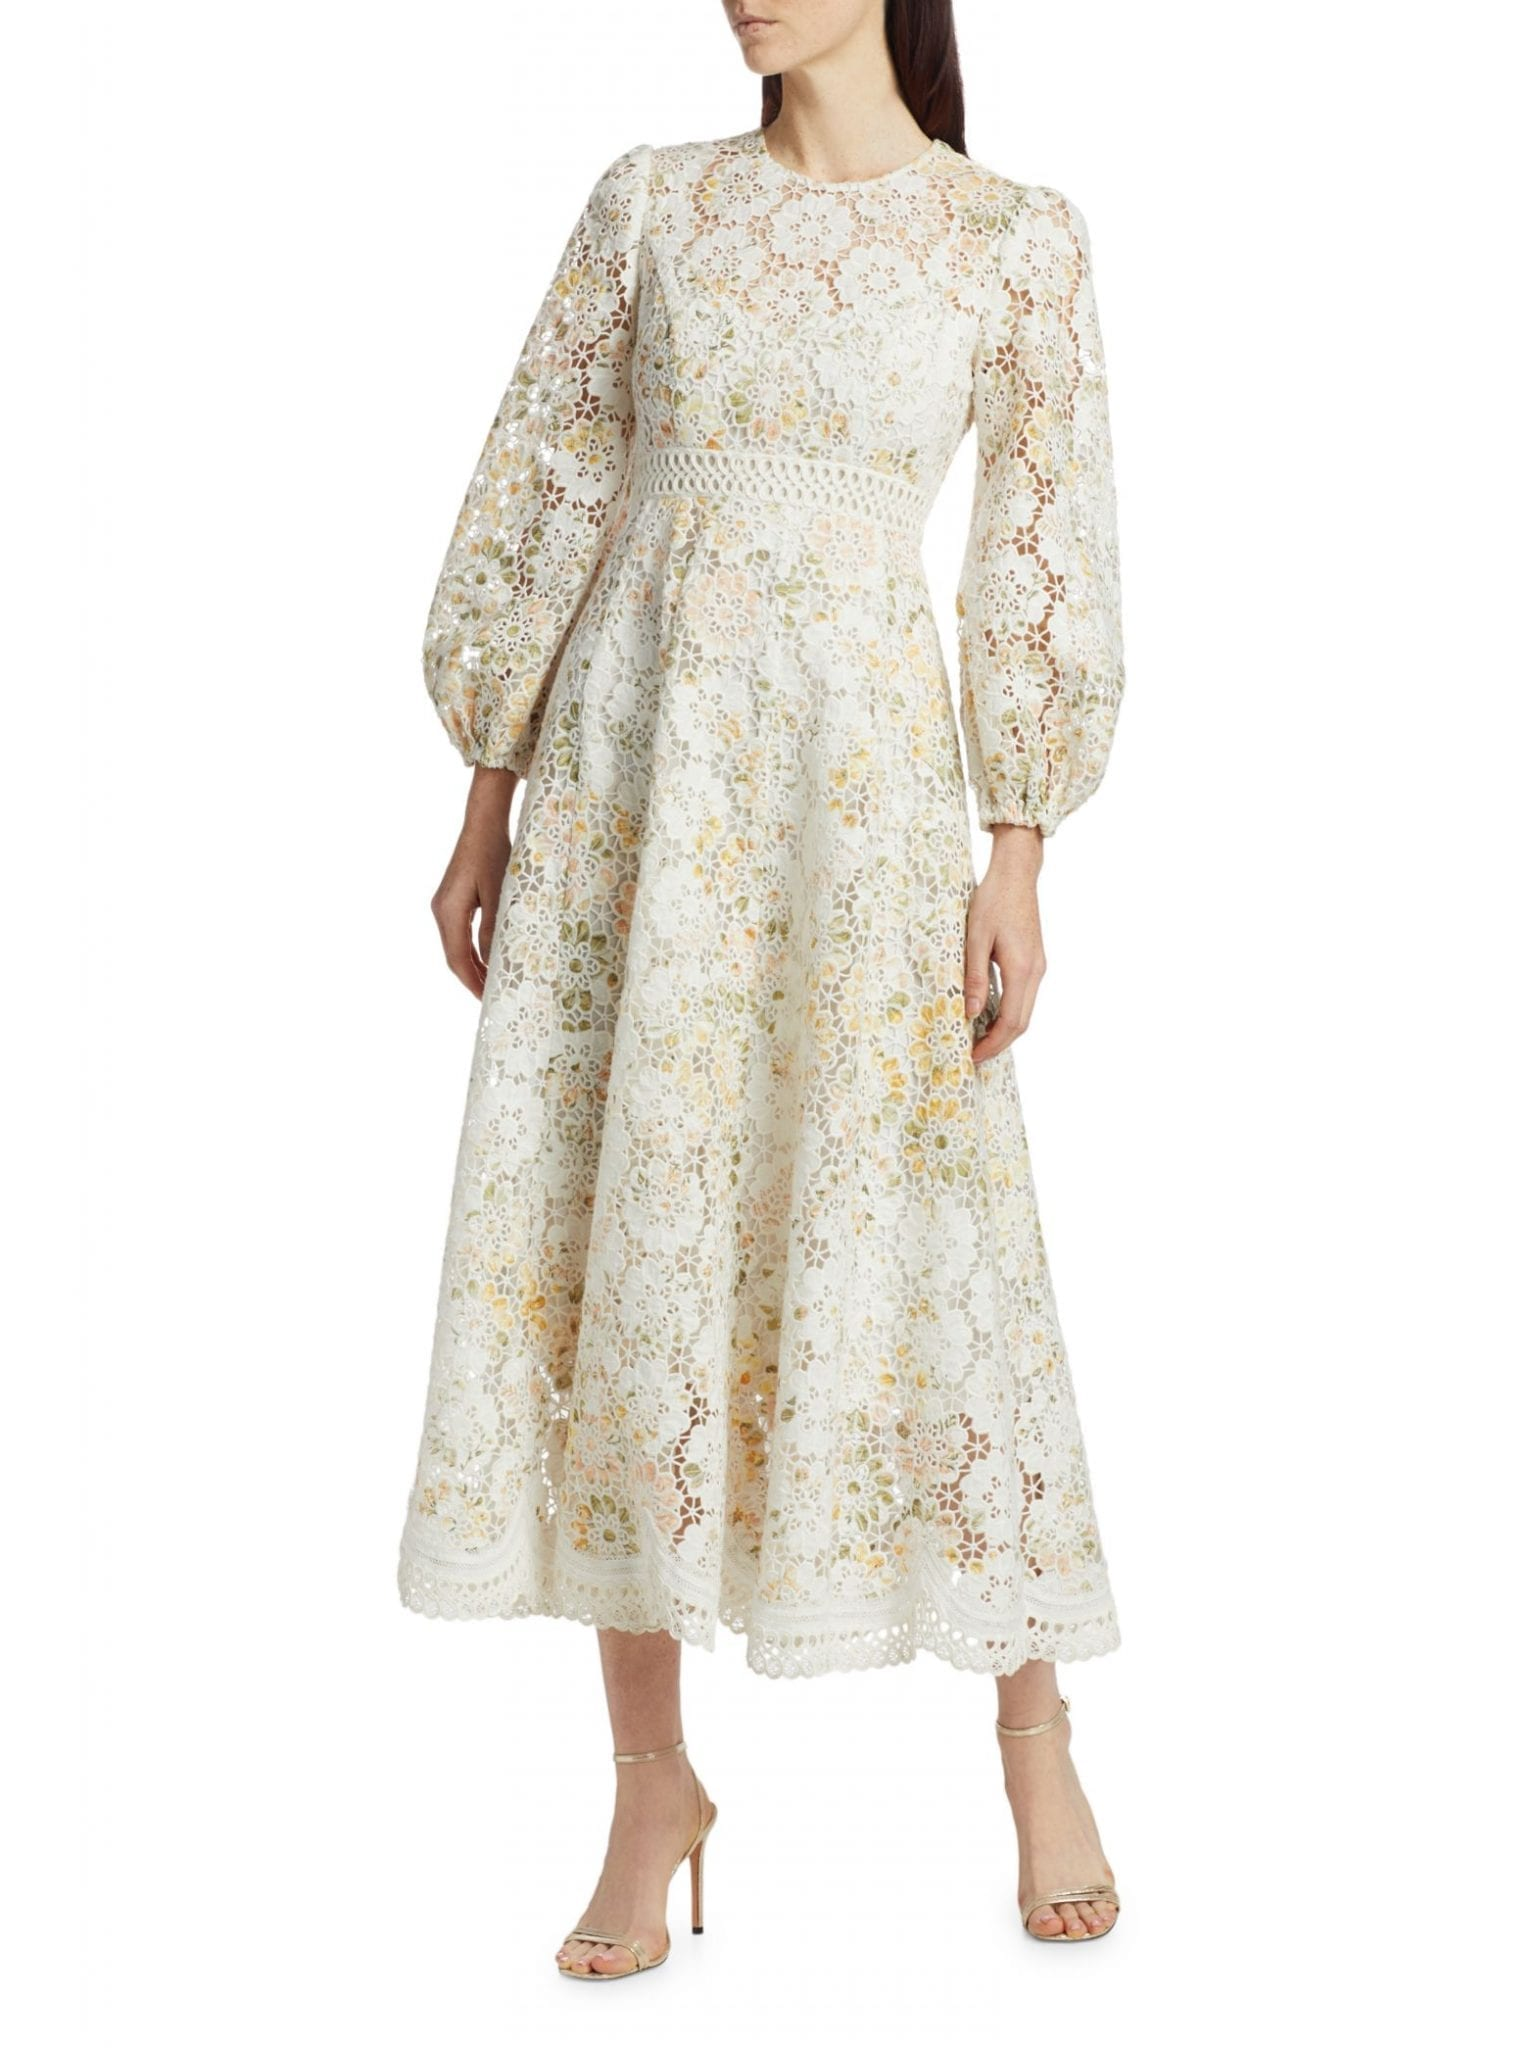 ZIMMERMANN Amelie Floral Linen-Blend Lace Eyelet Puff-Sleeve Dress